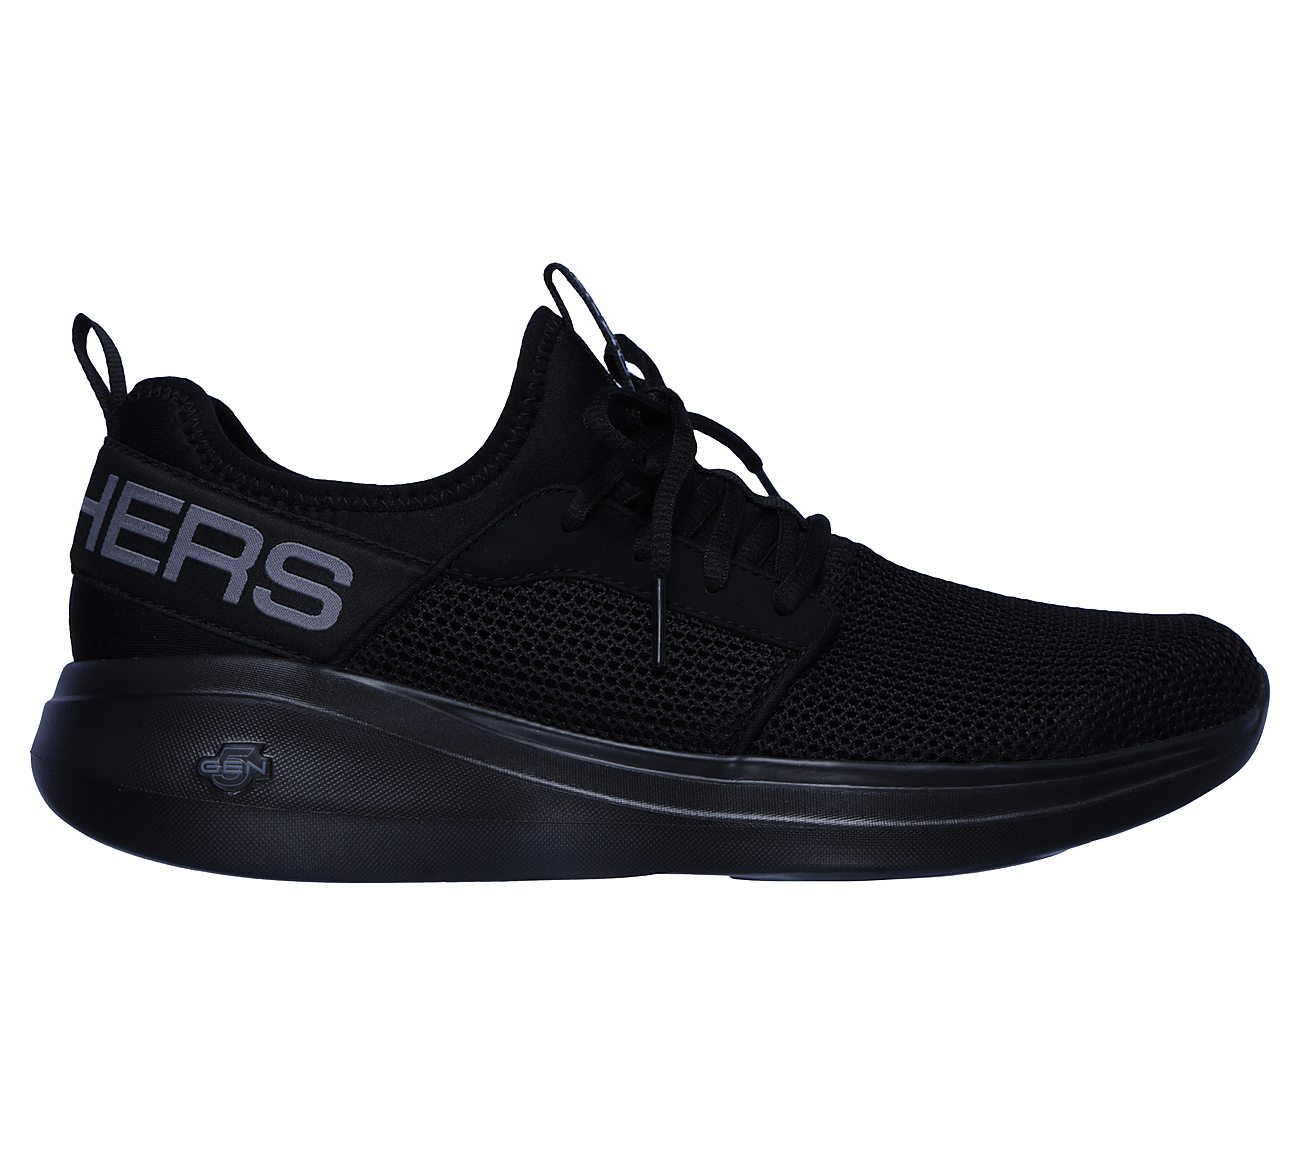 Inmundicia Alarmante Afilar  Buy SKECHERS Skechers GOrun Fast - Valor Skechers Performance Shoes